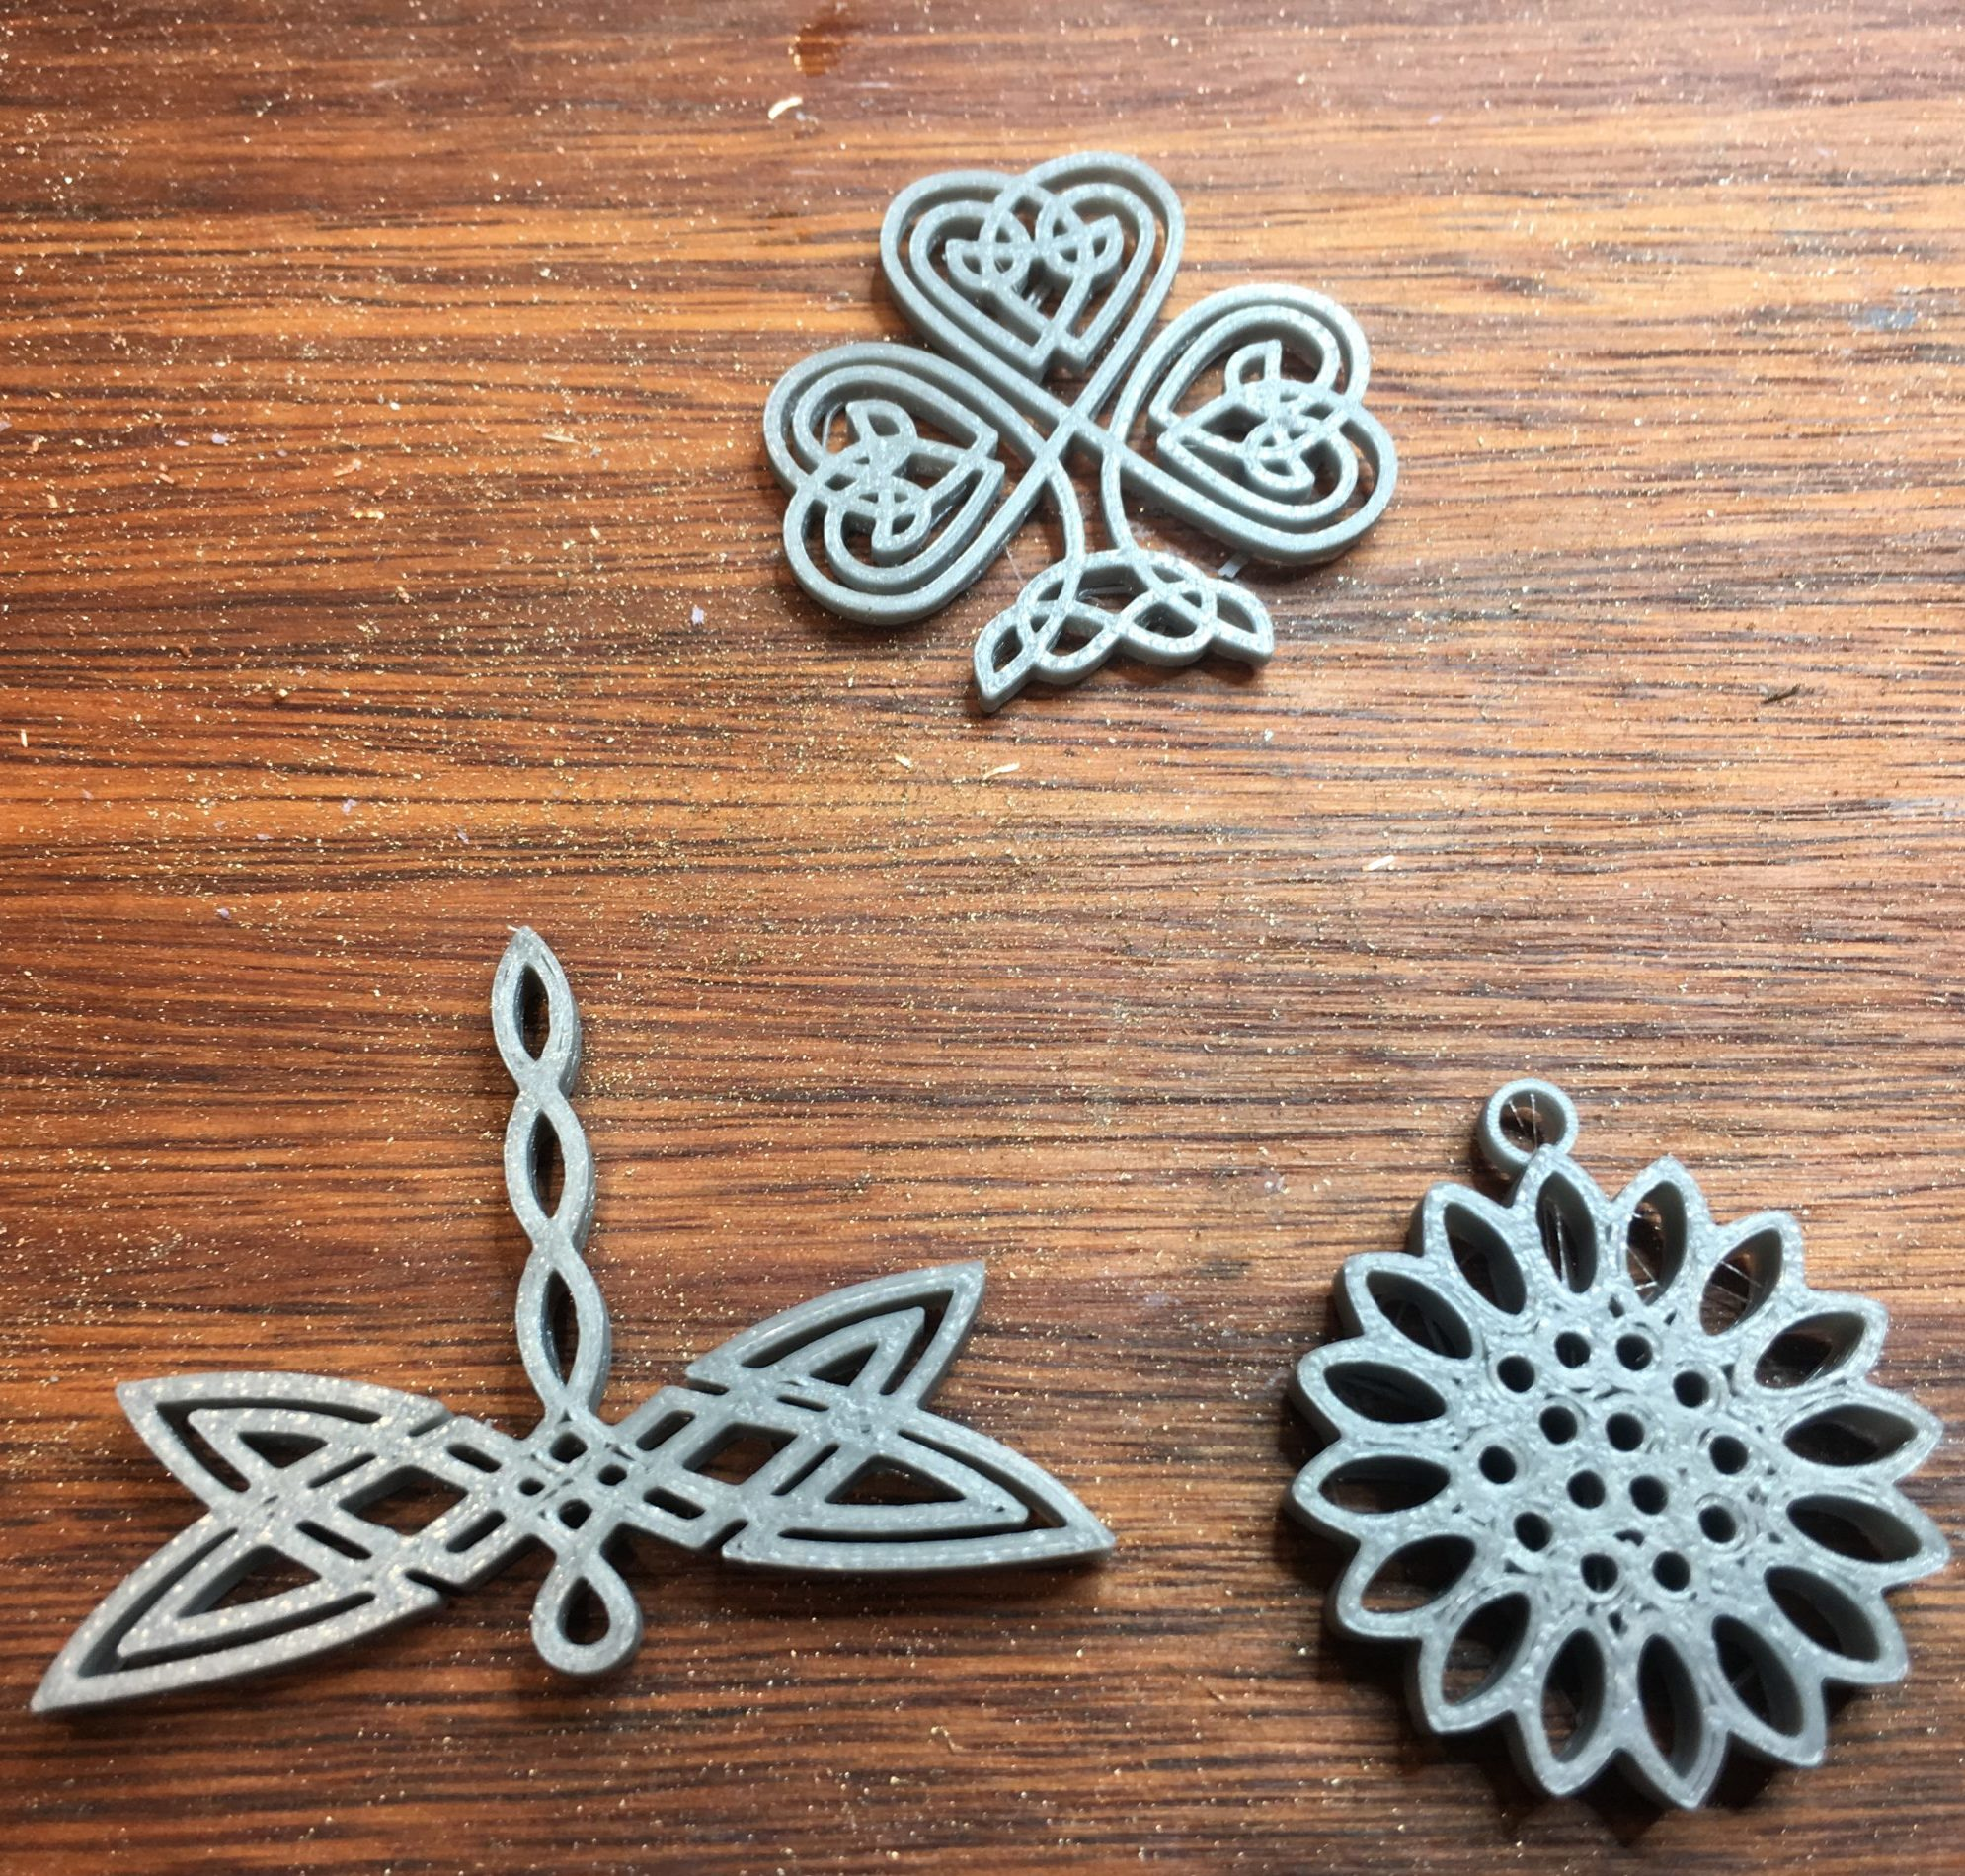 3D printed items for mould making and silver casting